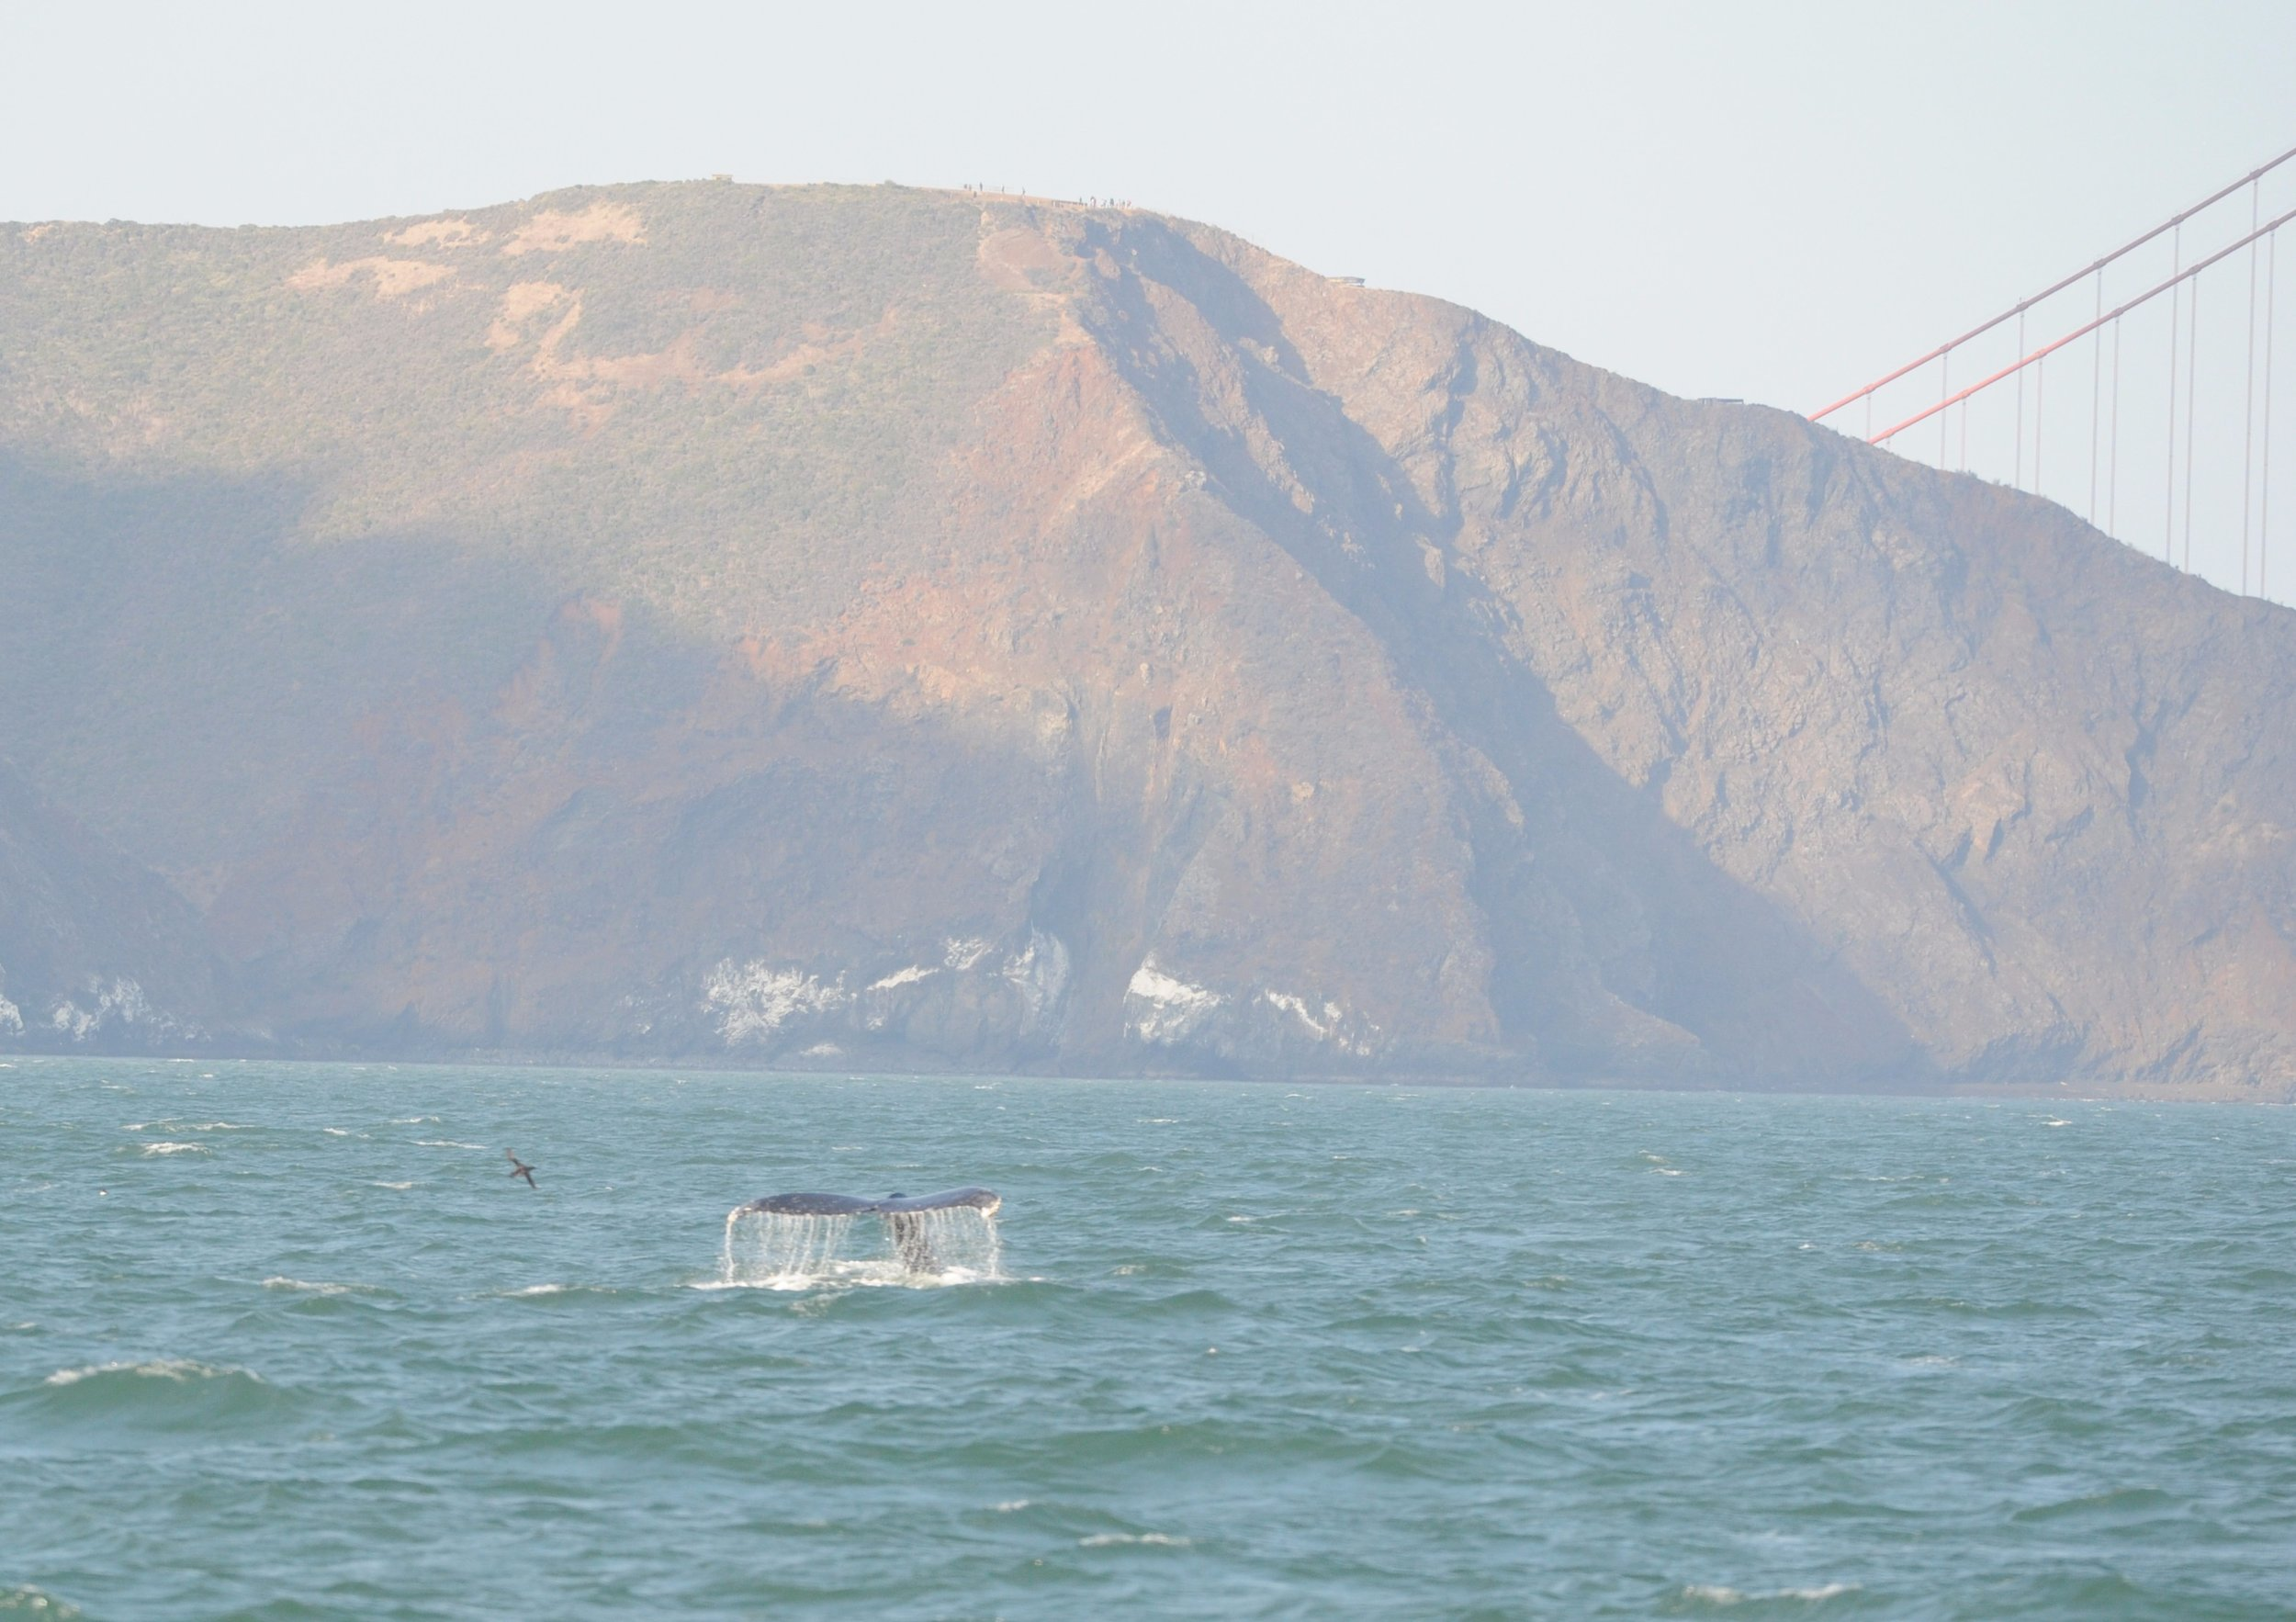 Humpback whale fluke with the edge of the Golden Gate Bridge in the background.